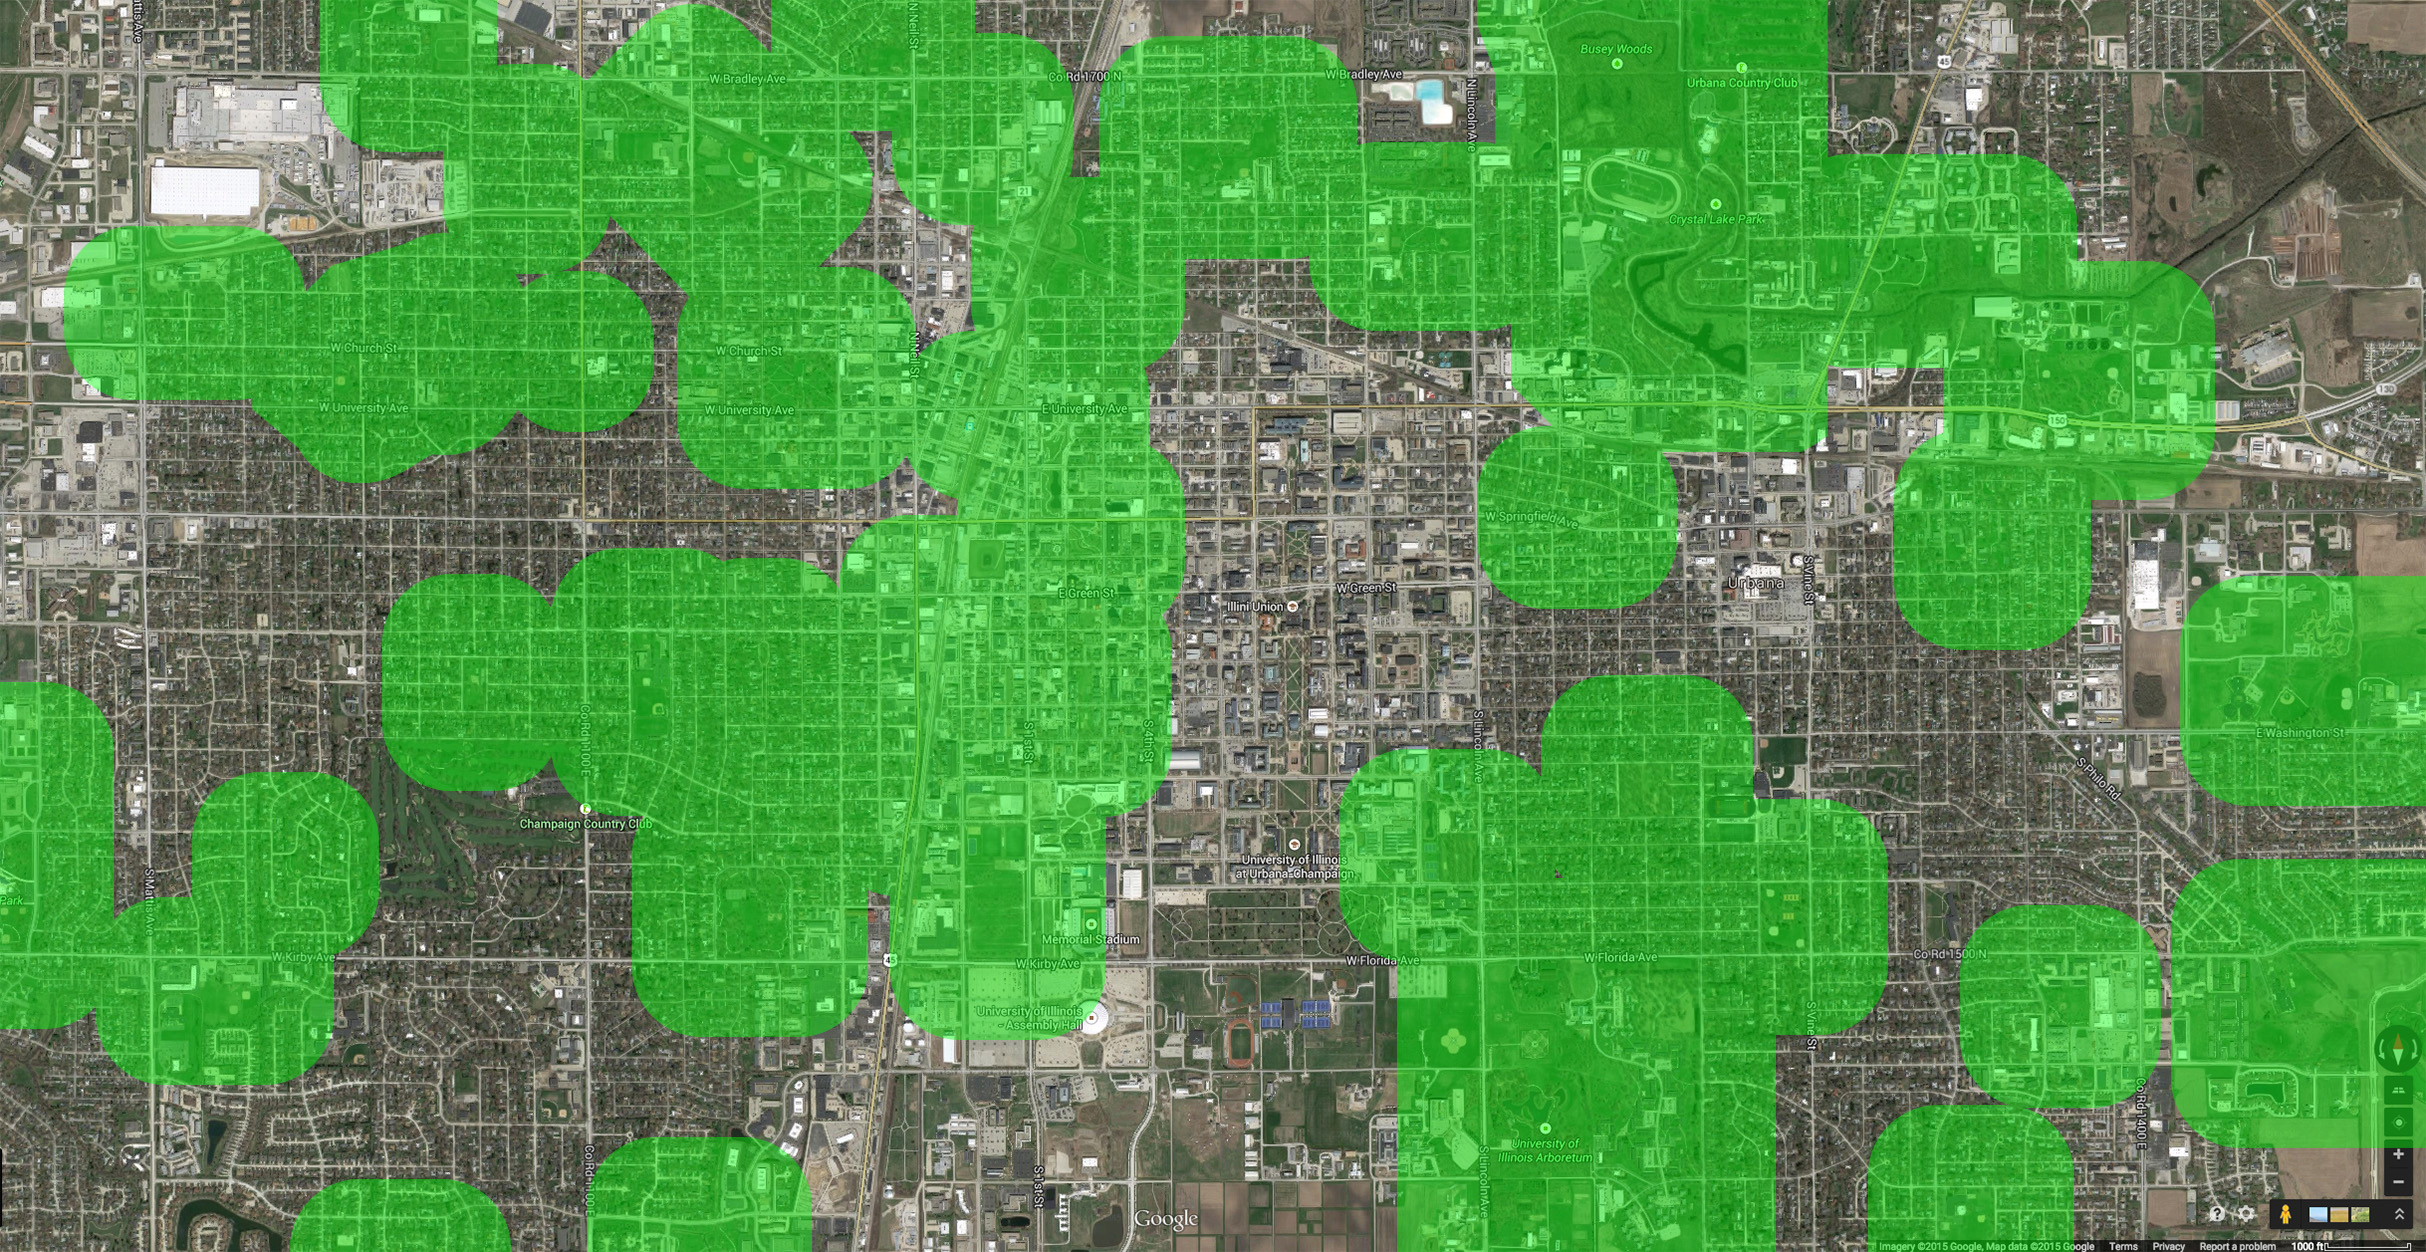 Areas within 1,000 feet of public parks